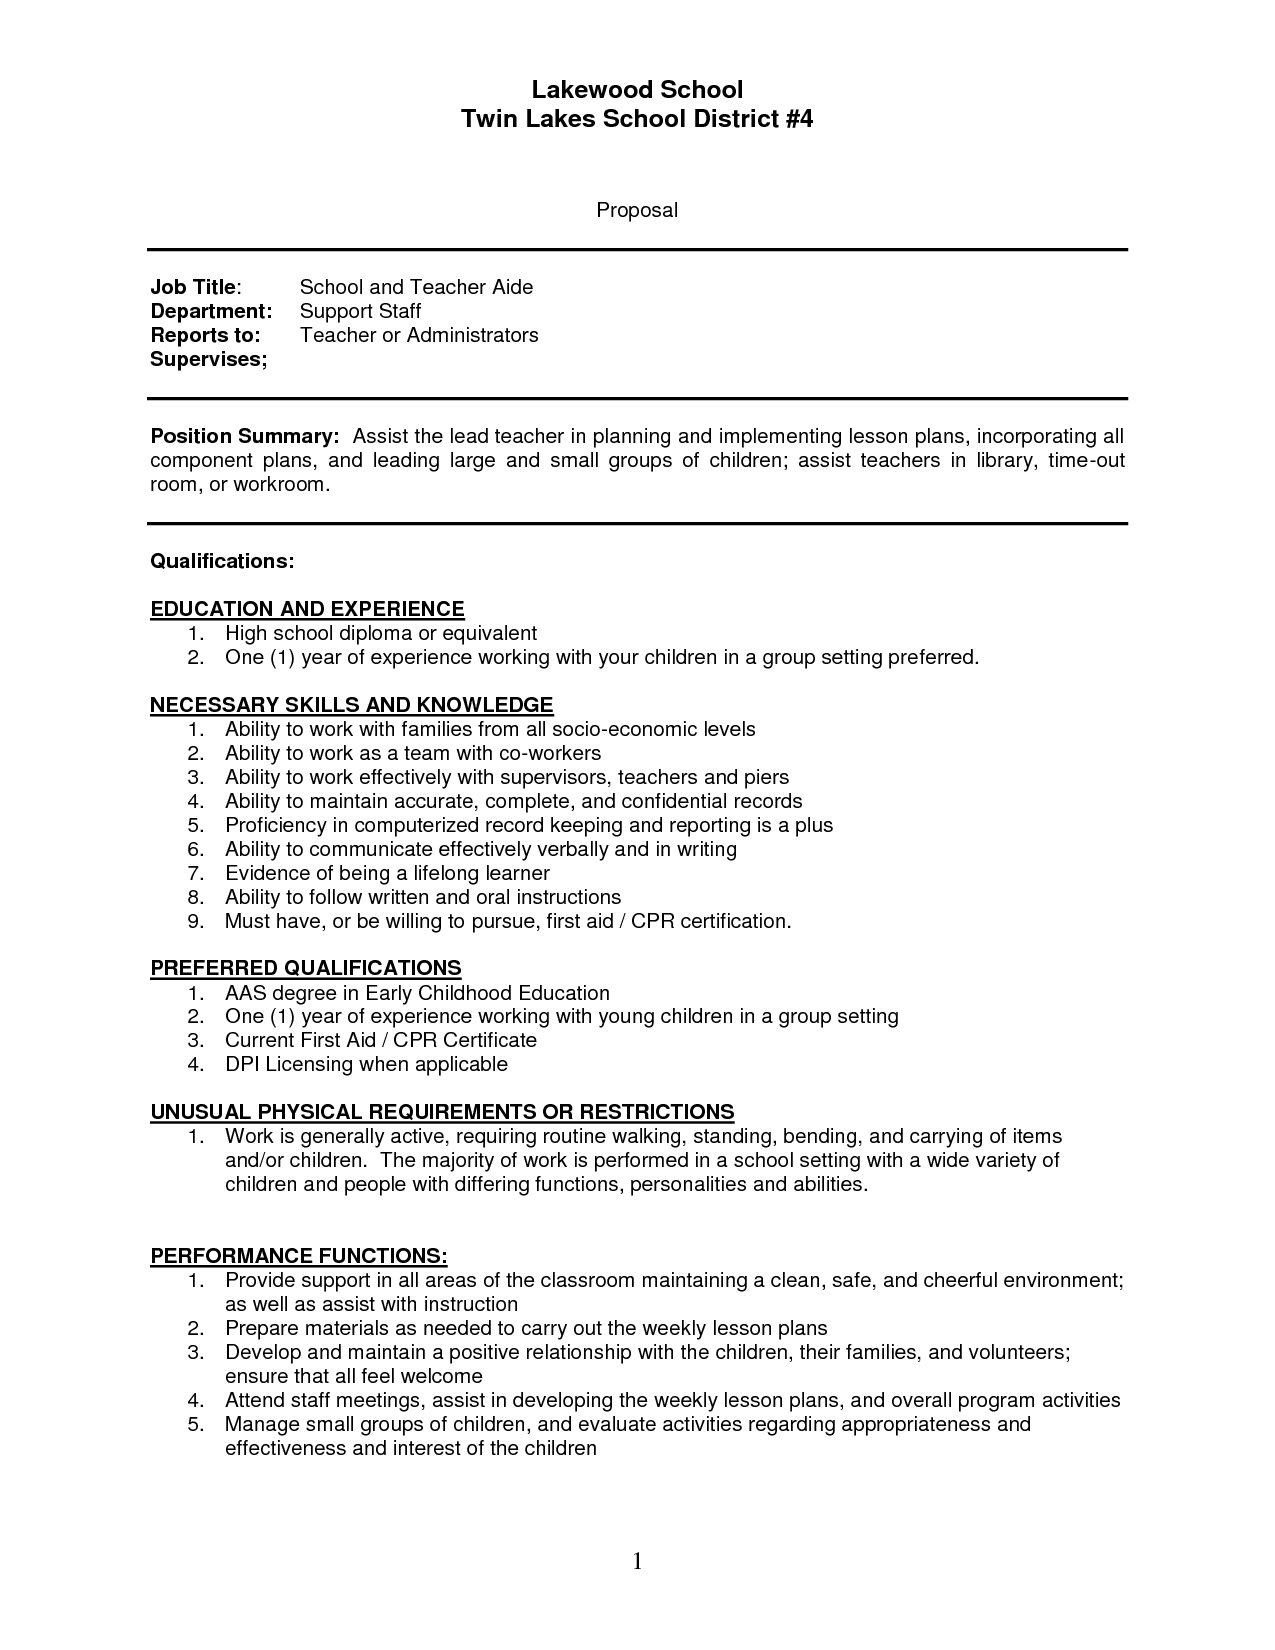 Teacher Aide Resume Teacher Assistant Sample Resume Sample Resume Of Teachers Aides